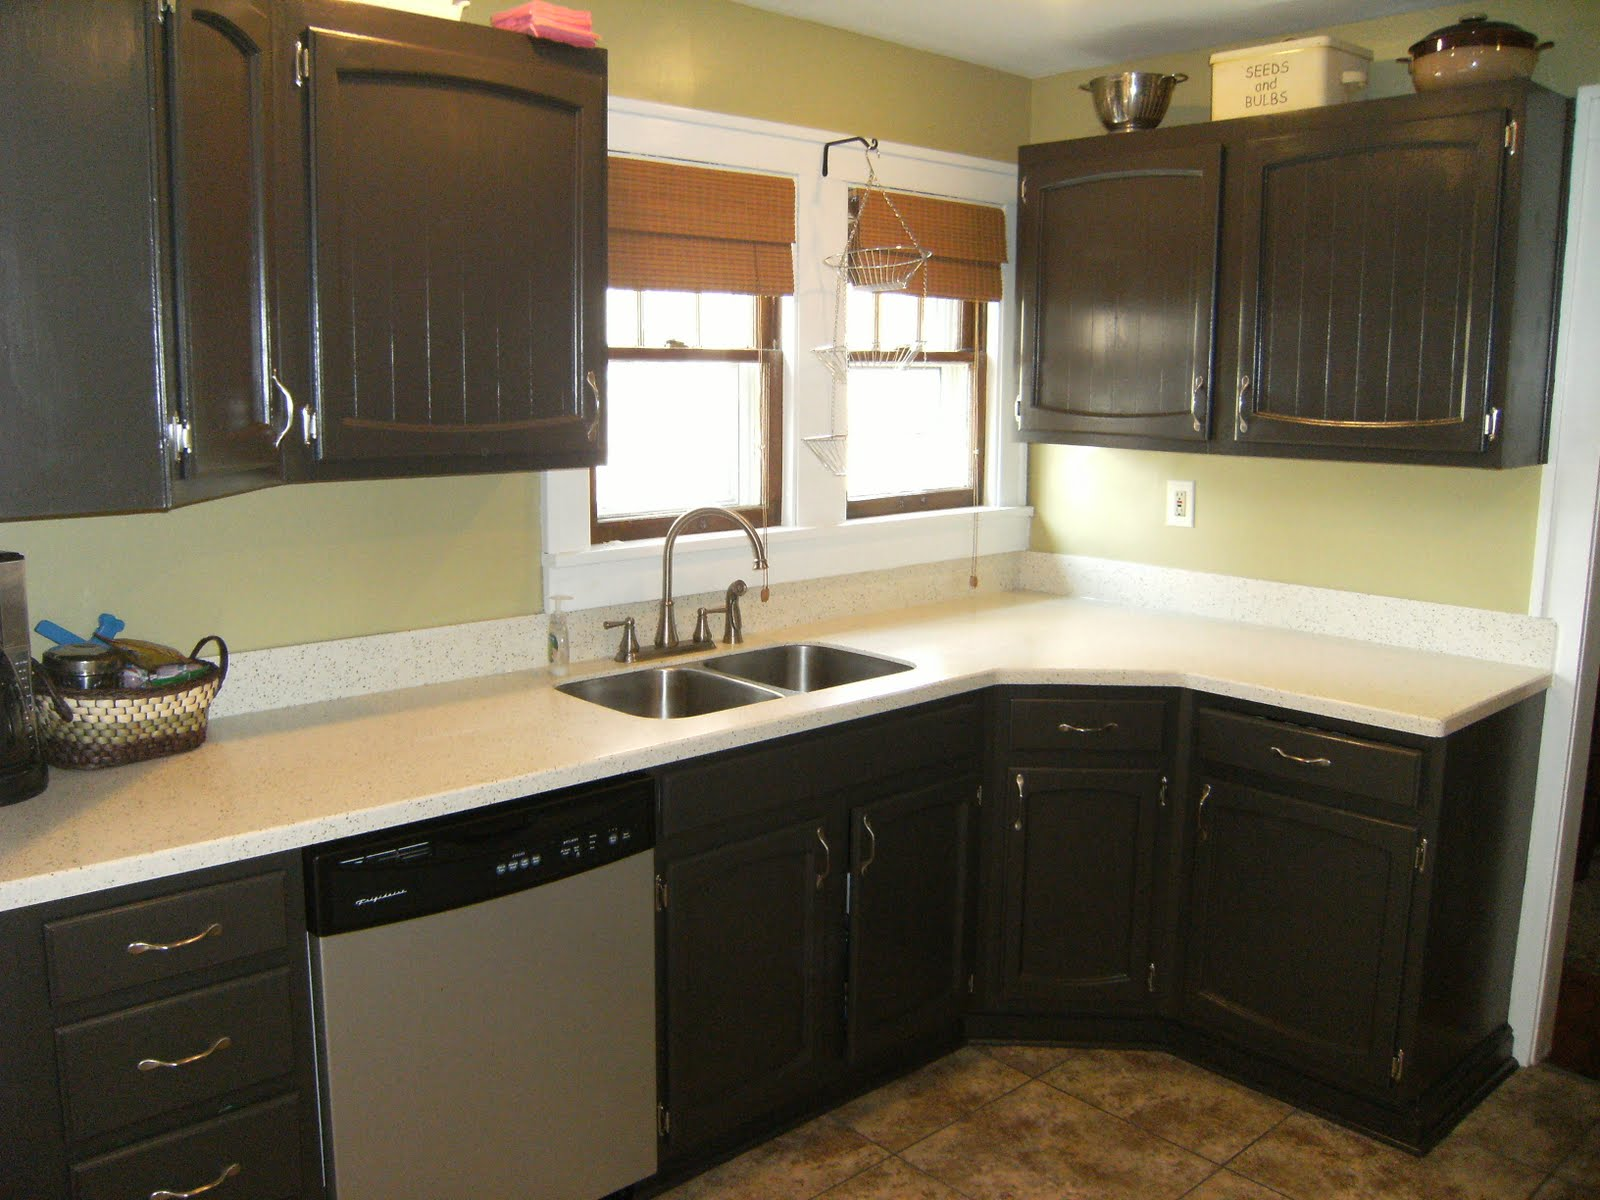 White And Black Painting Kitchen Countertops Ideas (Image 9 of 10)